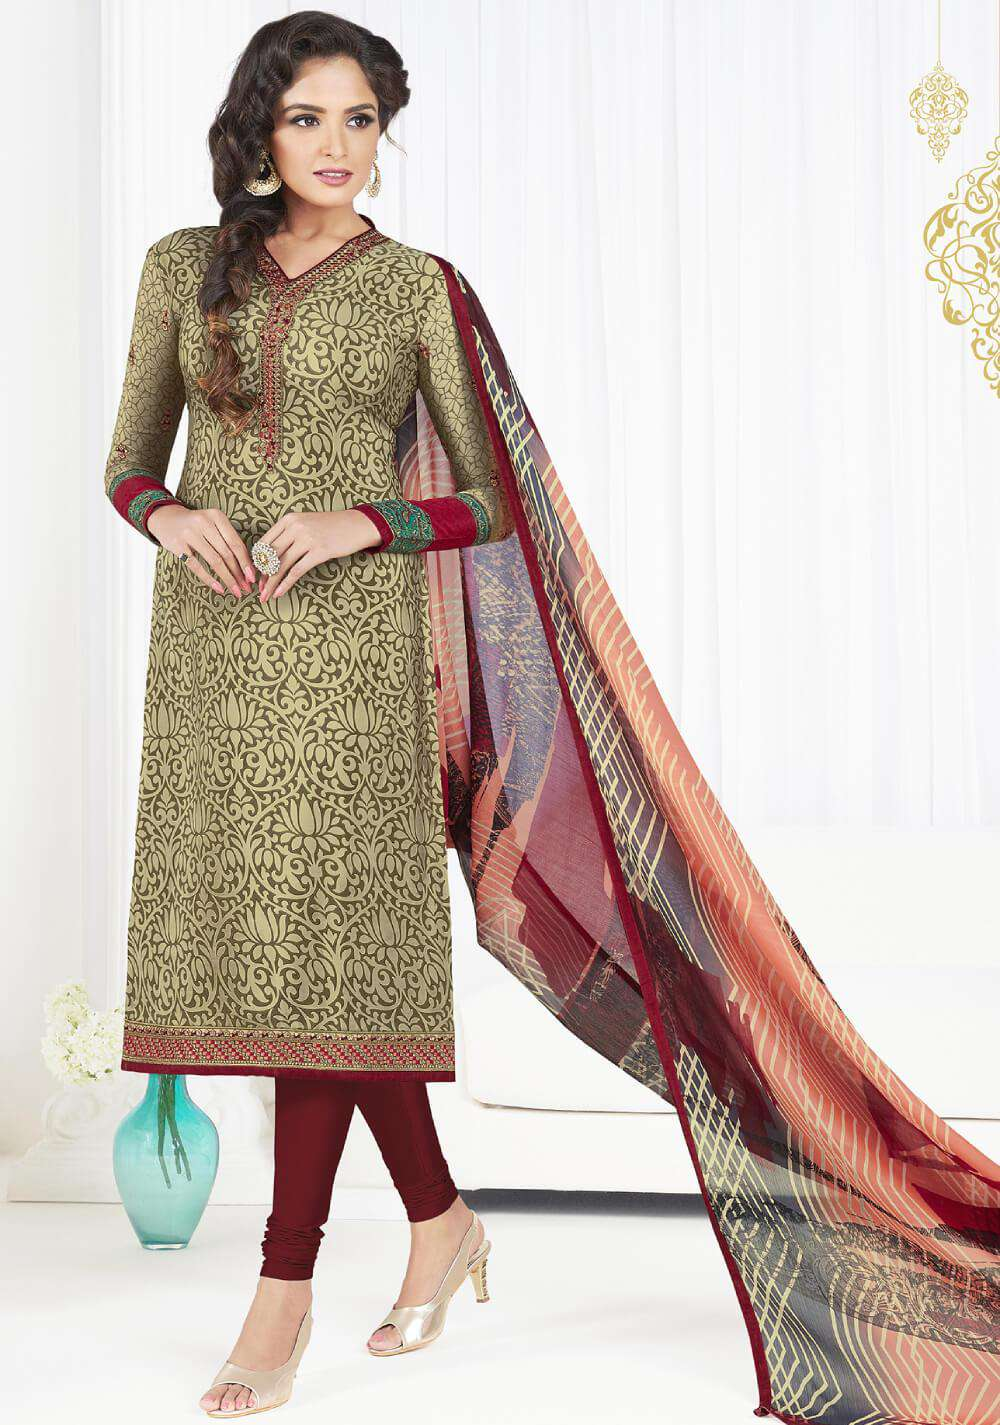 Green & Maroon Straight Look Printed French Crepe Salwar Kameez MYSK-1417